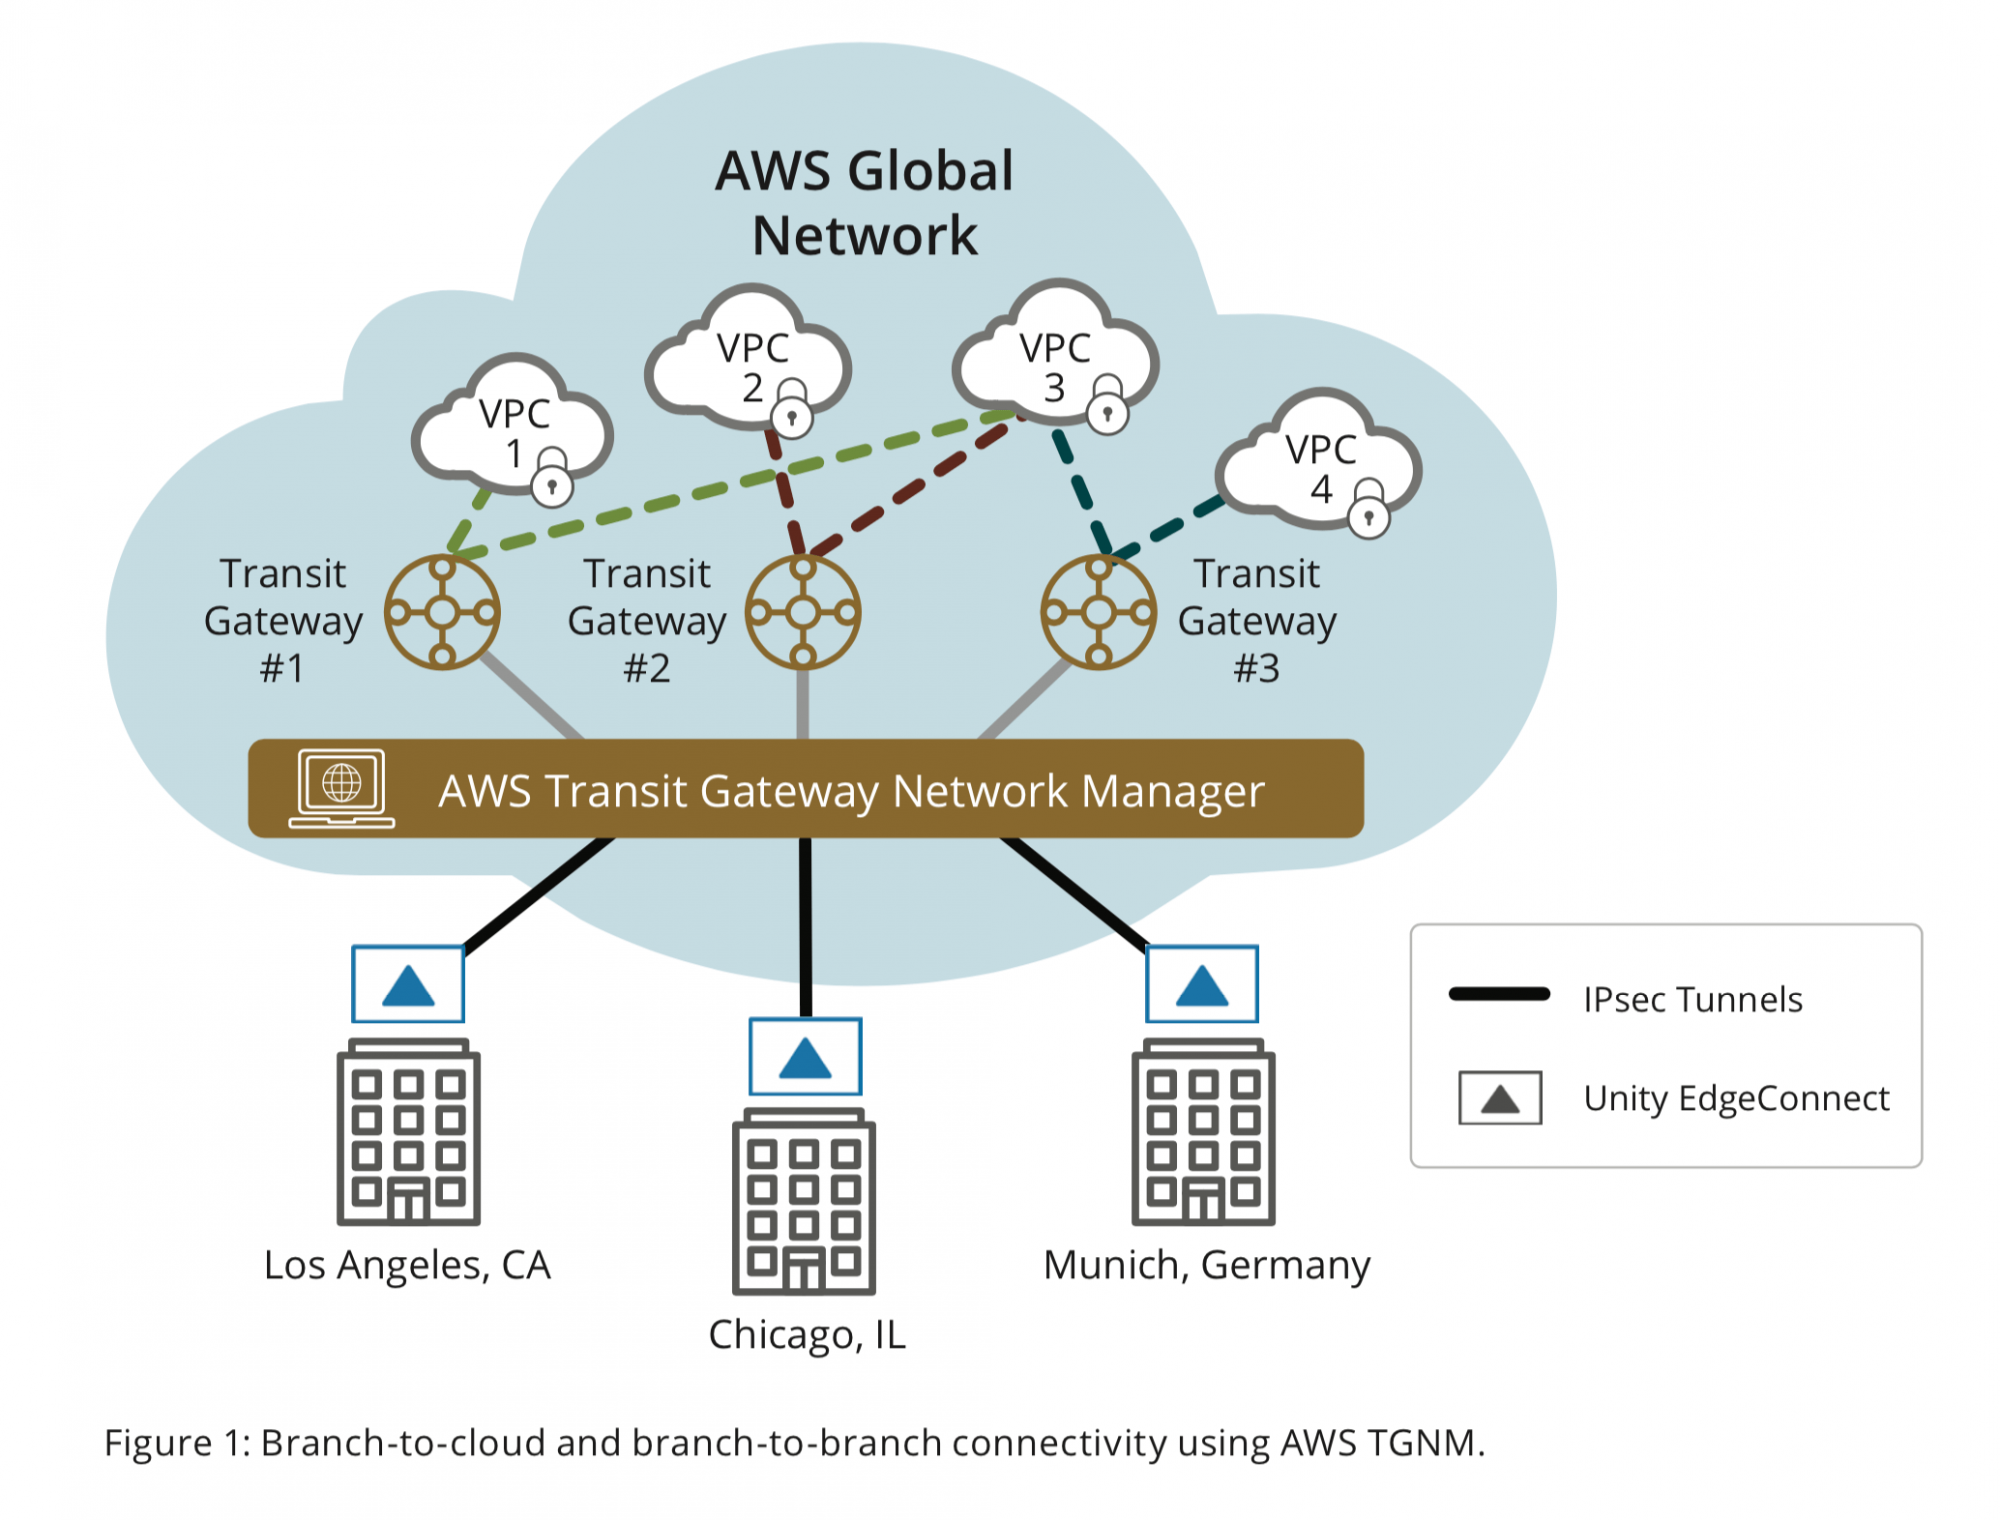 Figure 1: Branch-to-cloud and branch-to-branch connectivity using AWS TGNM.